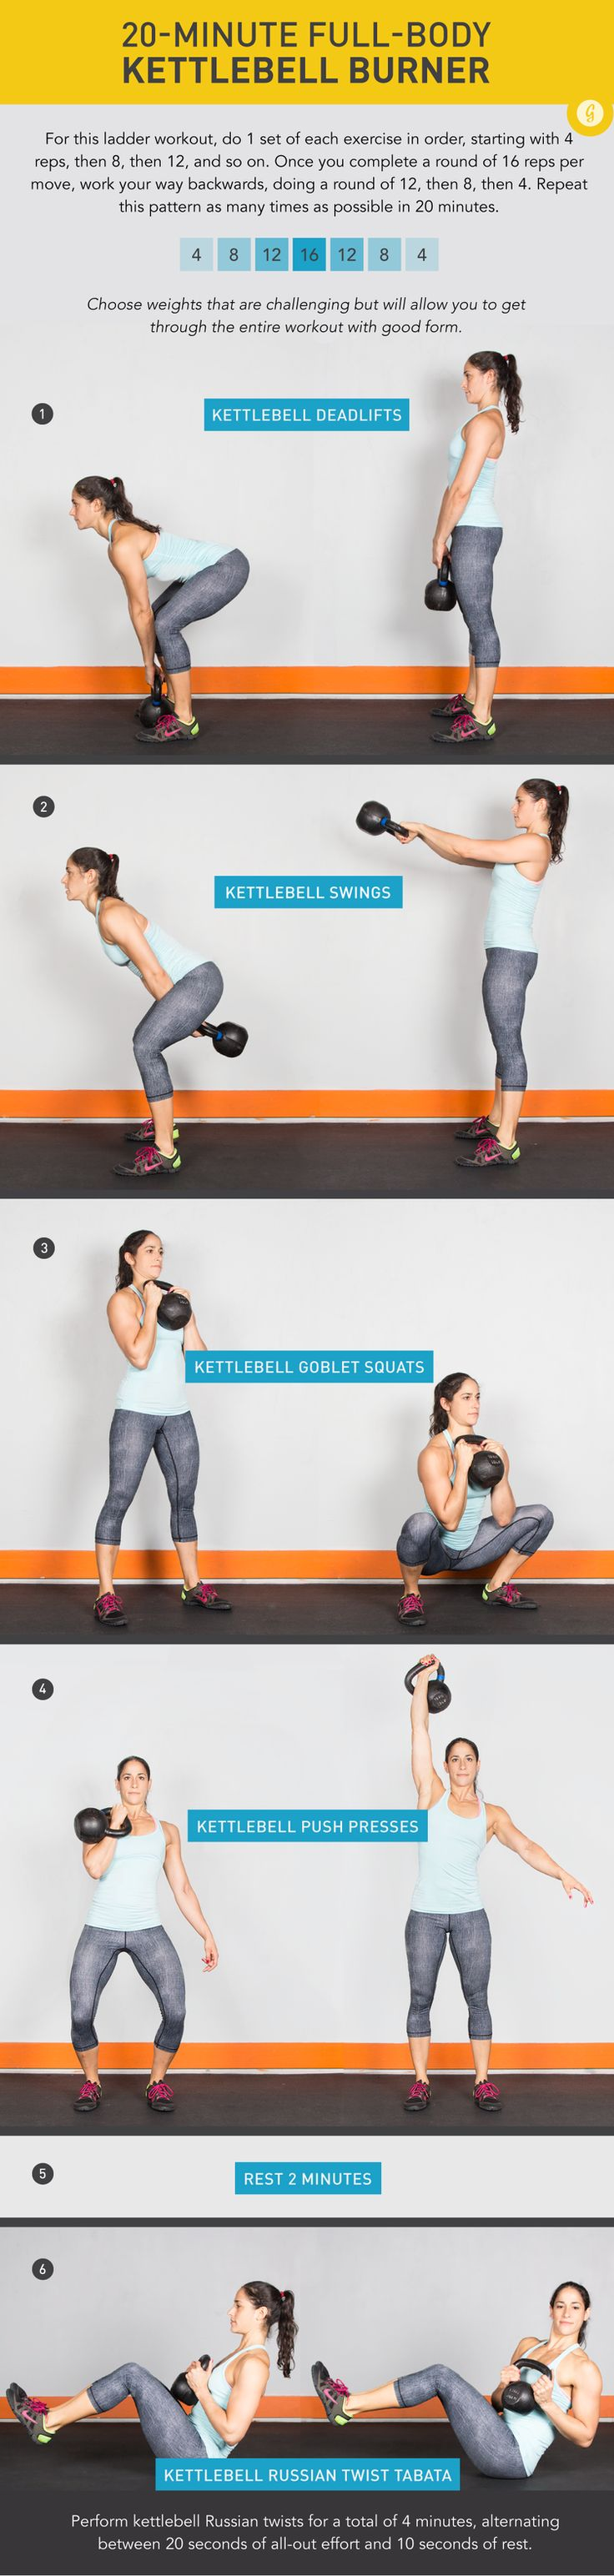 When it comes to strength and conditioning, a couple kettlebells are all you need for a kickass, effective workout.